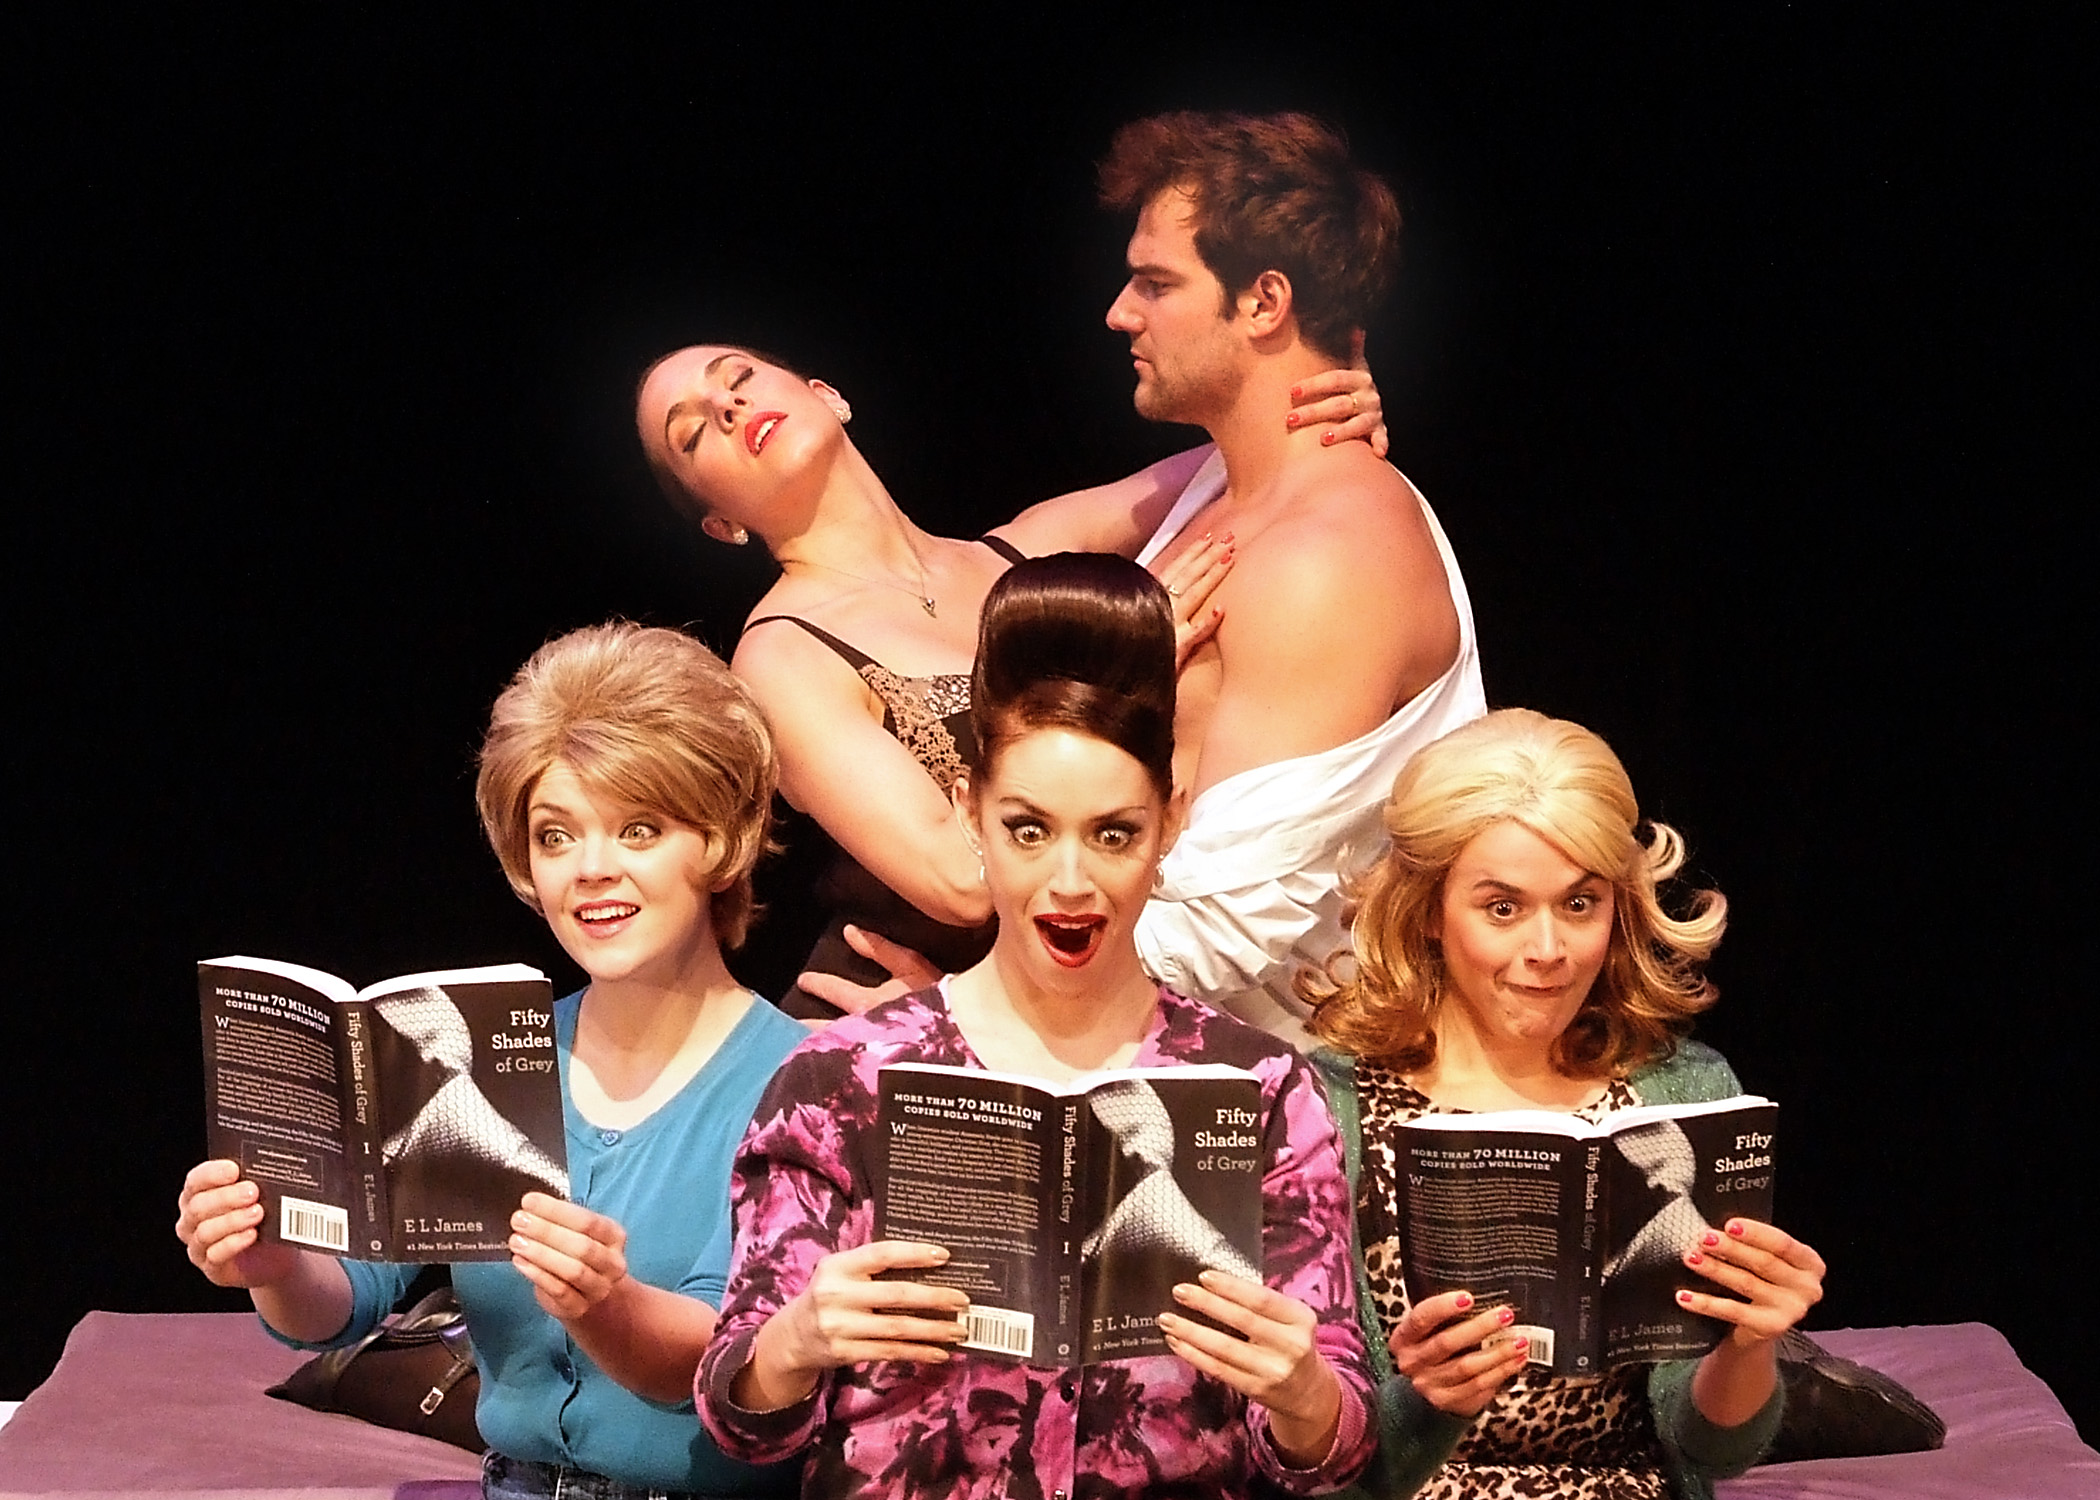 (L to R) Sheila O'Connor, Caroline Reade, Tiffany Dissette, BJ Gruber, Alexis Field in 50 Shades! The Musical.  Photo by Ed  Krieger